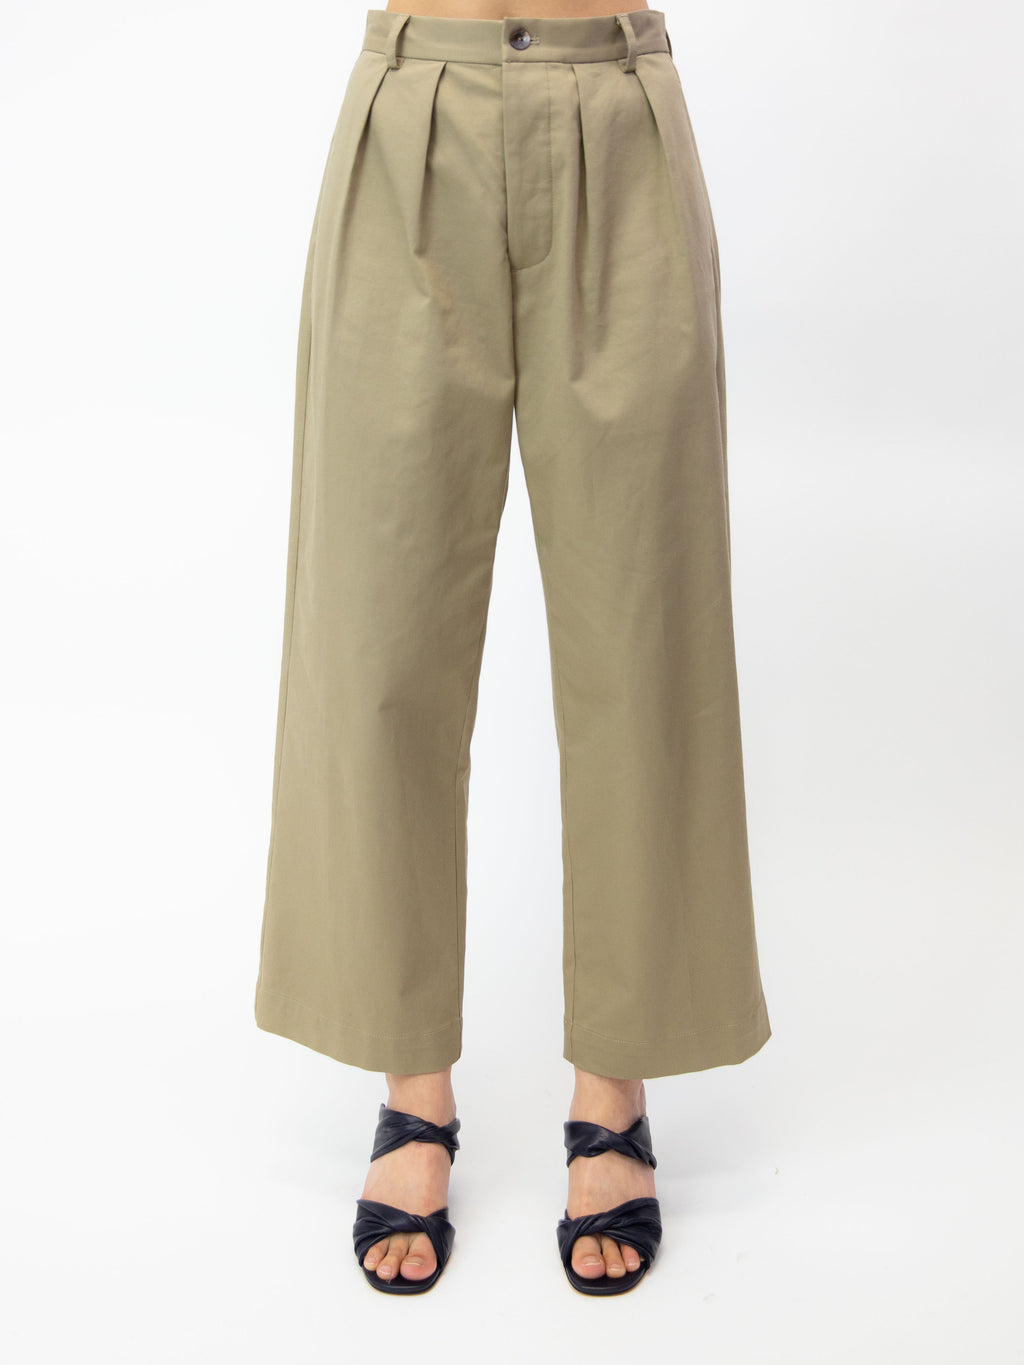 Palisades Pleated Trouser - Khaki